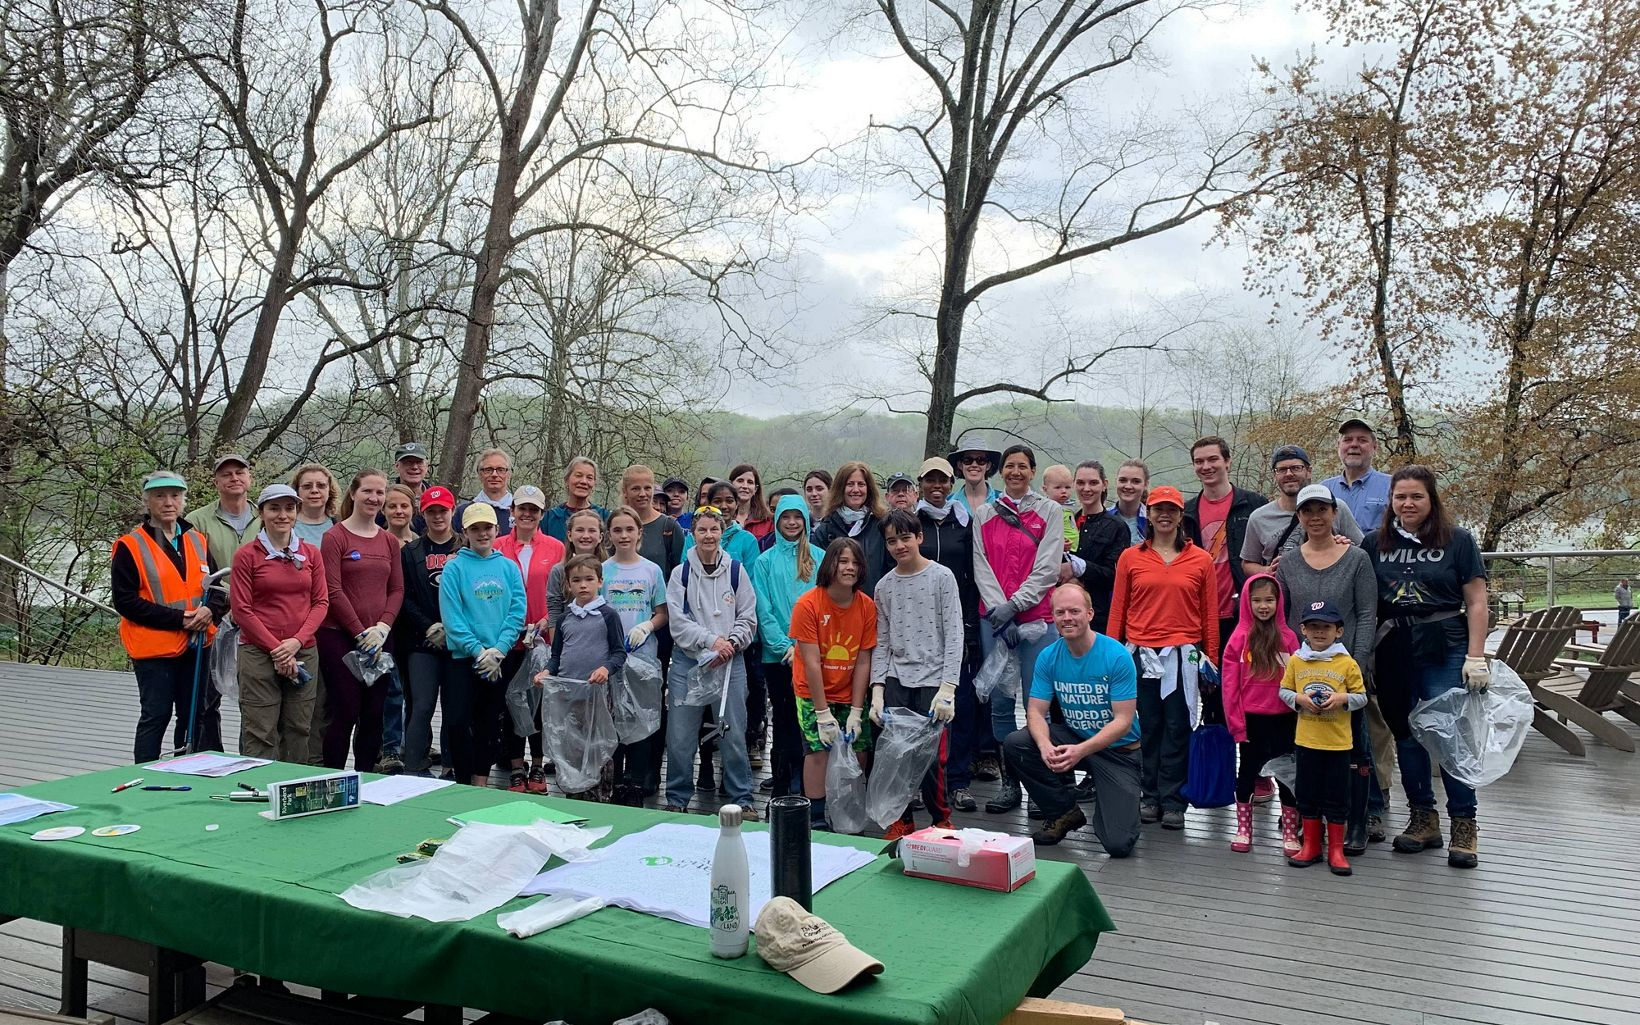 40 volunteers collected 50 pounds of trash at Riverbend Park, including 50 golf balls.